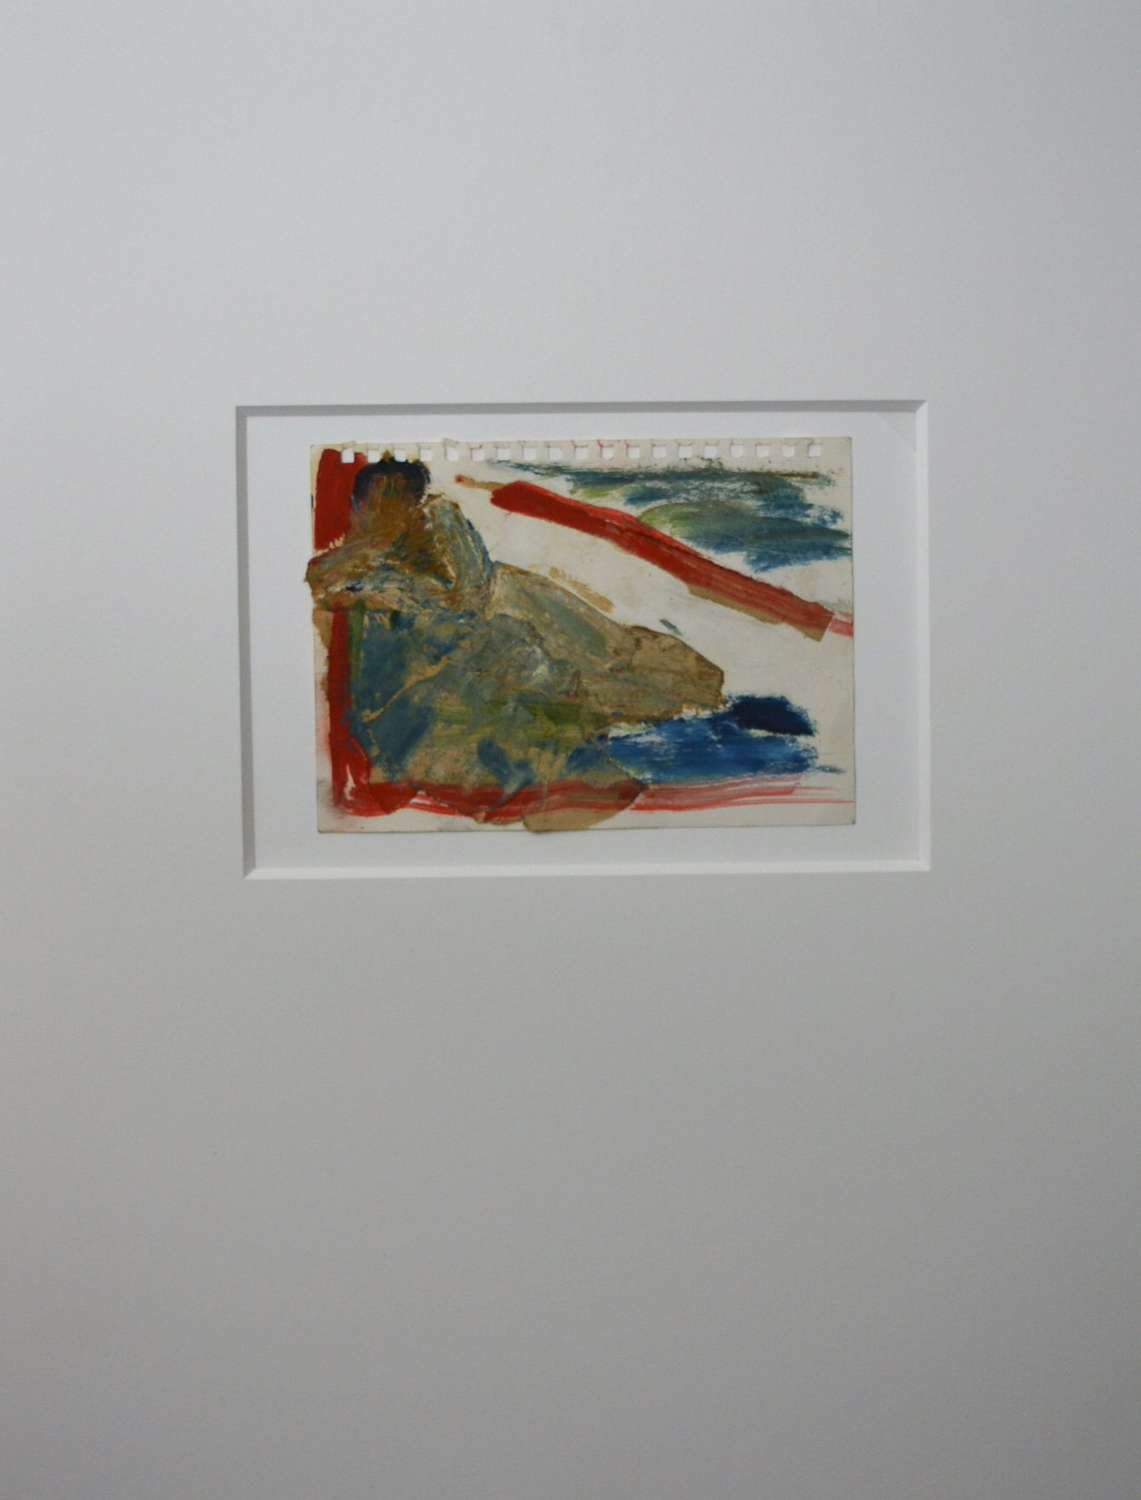 ABSTRACT FIGURE BY NAN FRANKEL